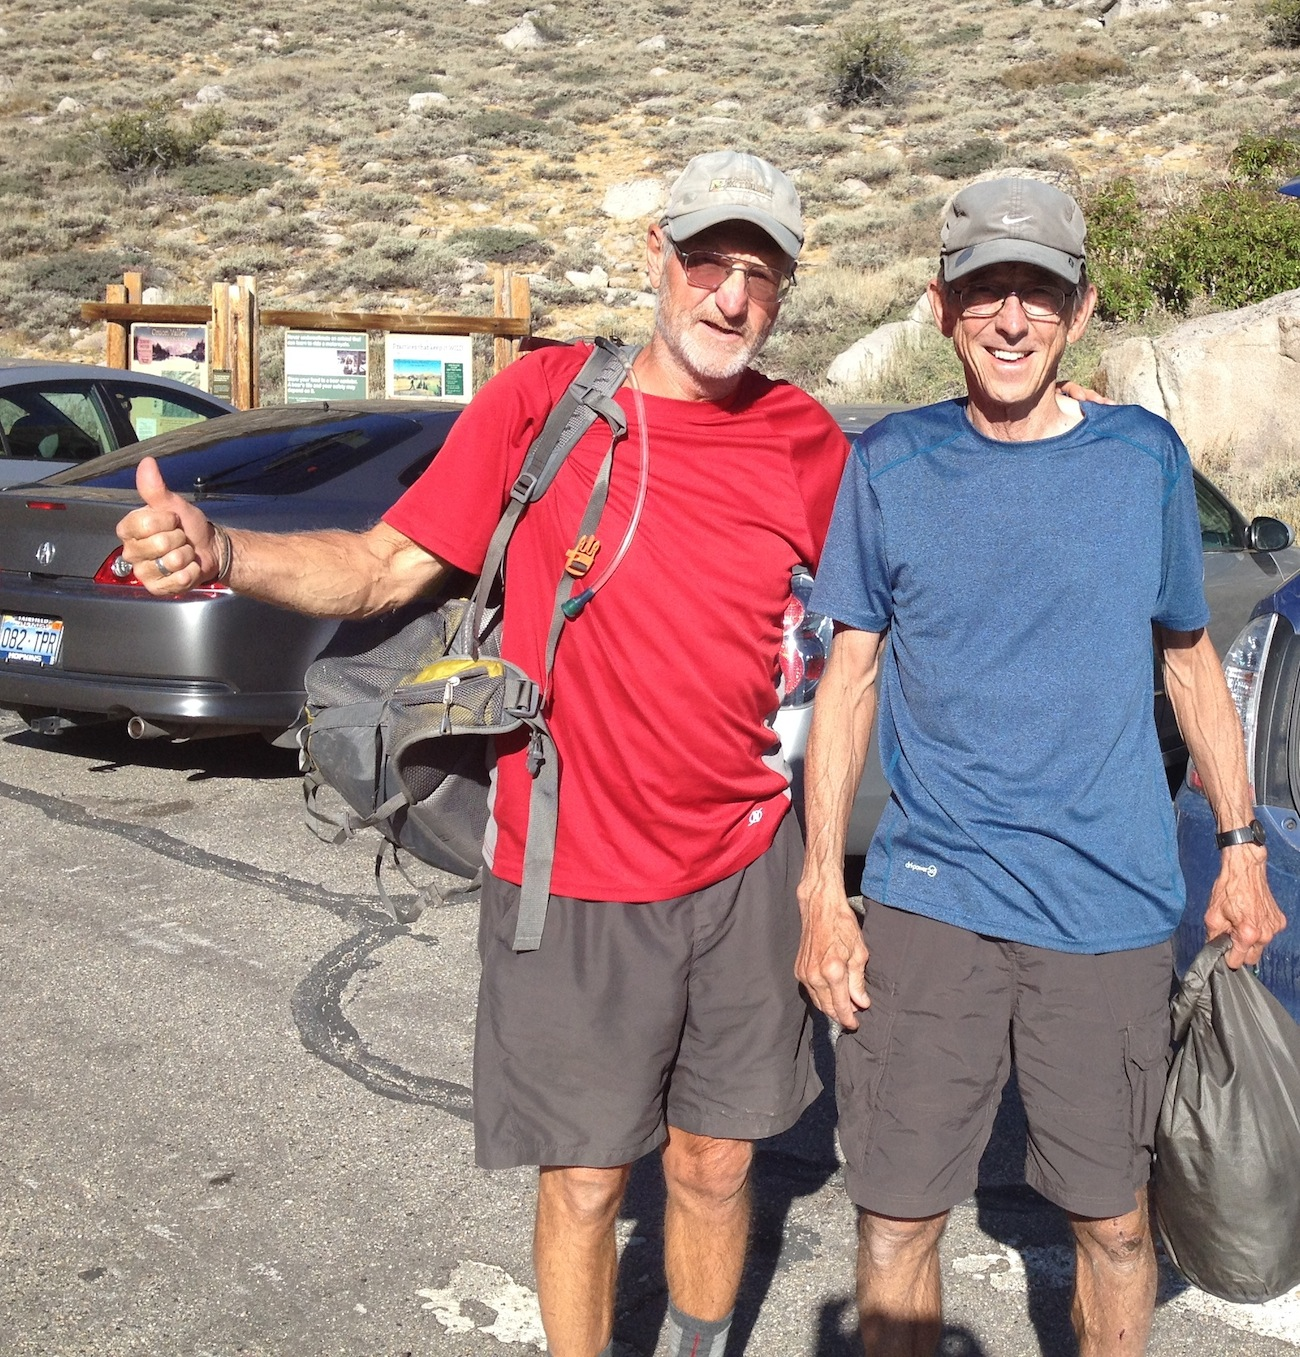 Dick and Larry from Reno on their way back up Kearsarge Pass and then on to Mt. Whitney. If they get bored they will bag a few more peaks along the way.